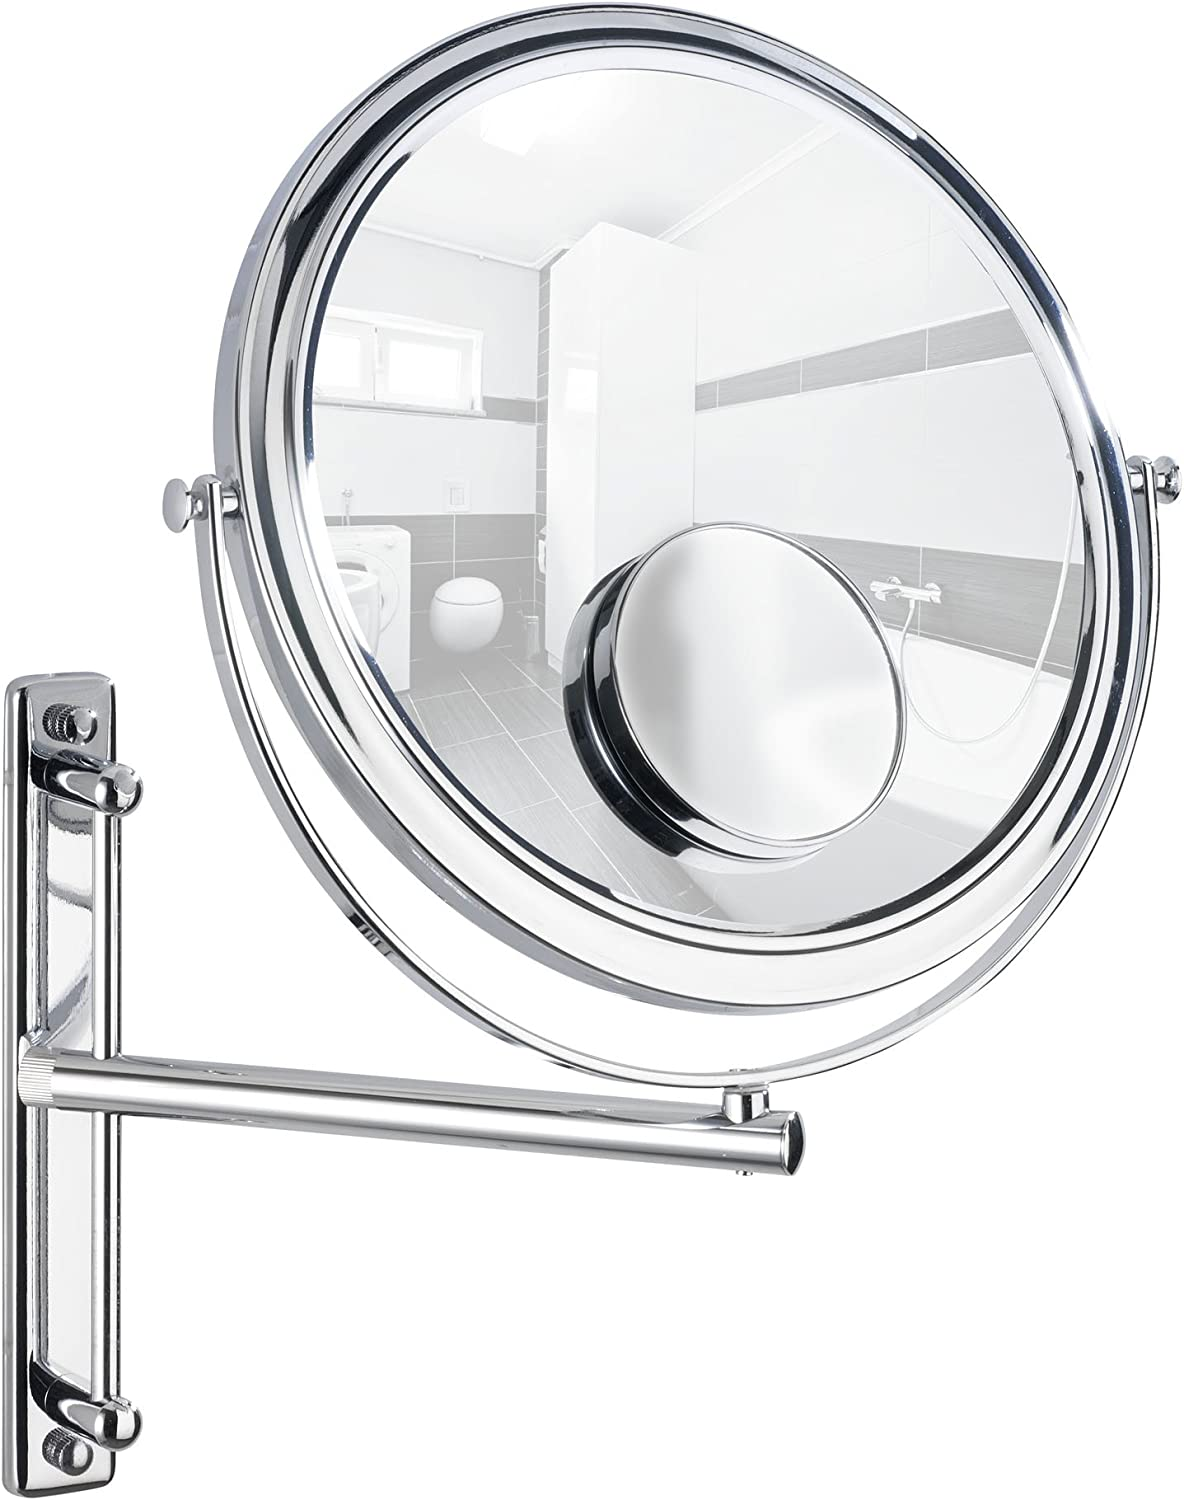 WENKO 3656370100 Wall-mounted Clearance SALE! Limited time! Alternative dealer cosmectic mirror Bivona - swi with